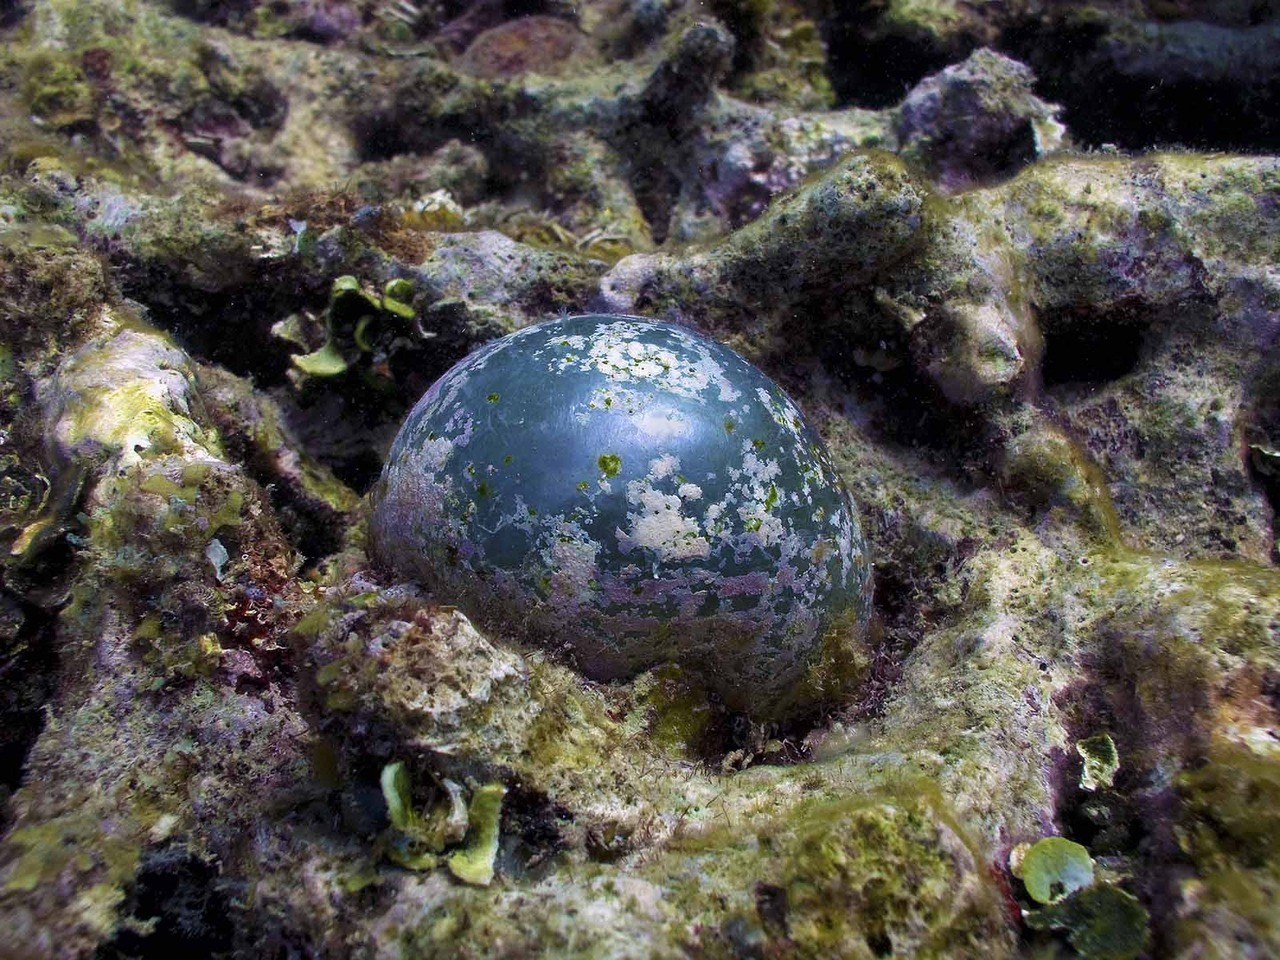 This odd green seaweed, known as Sailor's Eyeball (Valonia ventricosa), looks like a dark green marble, and consists of a single large cell attached to the substrate by a cluster of filaments called rhizoids. Younger plants have a bluish sheen, but older ones become overgrown with incrusting coralline red seaweeds.